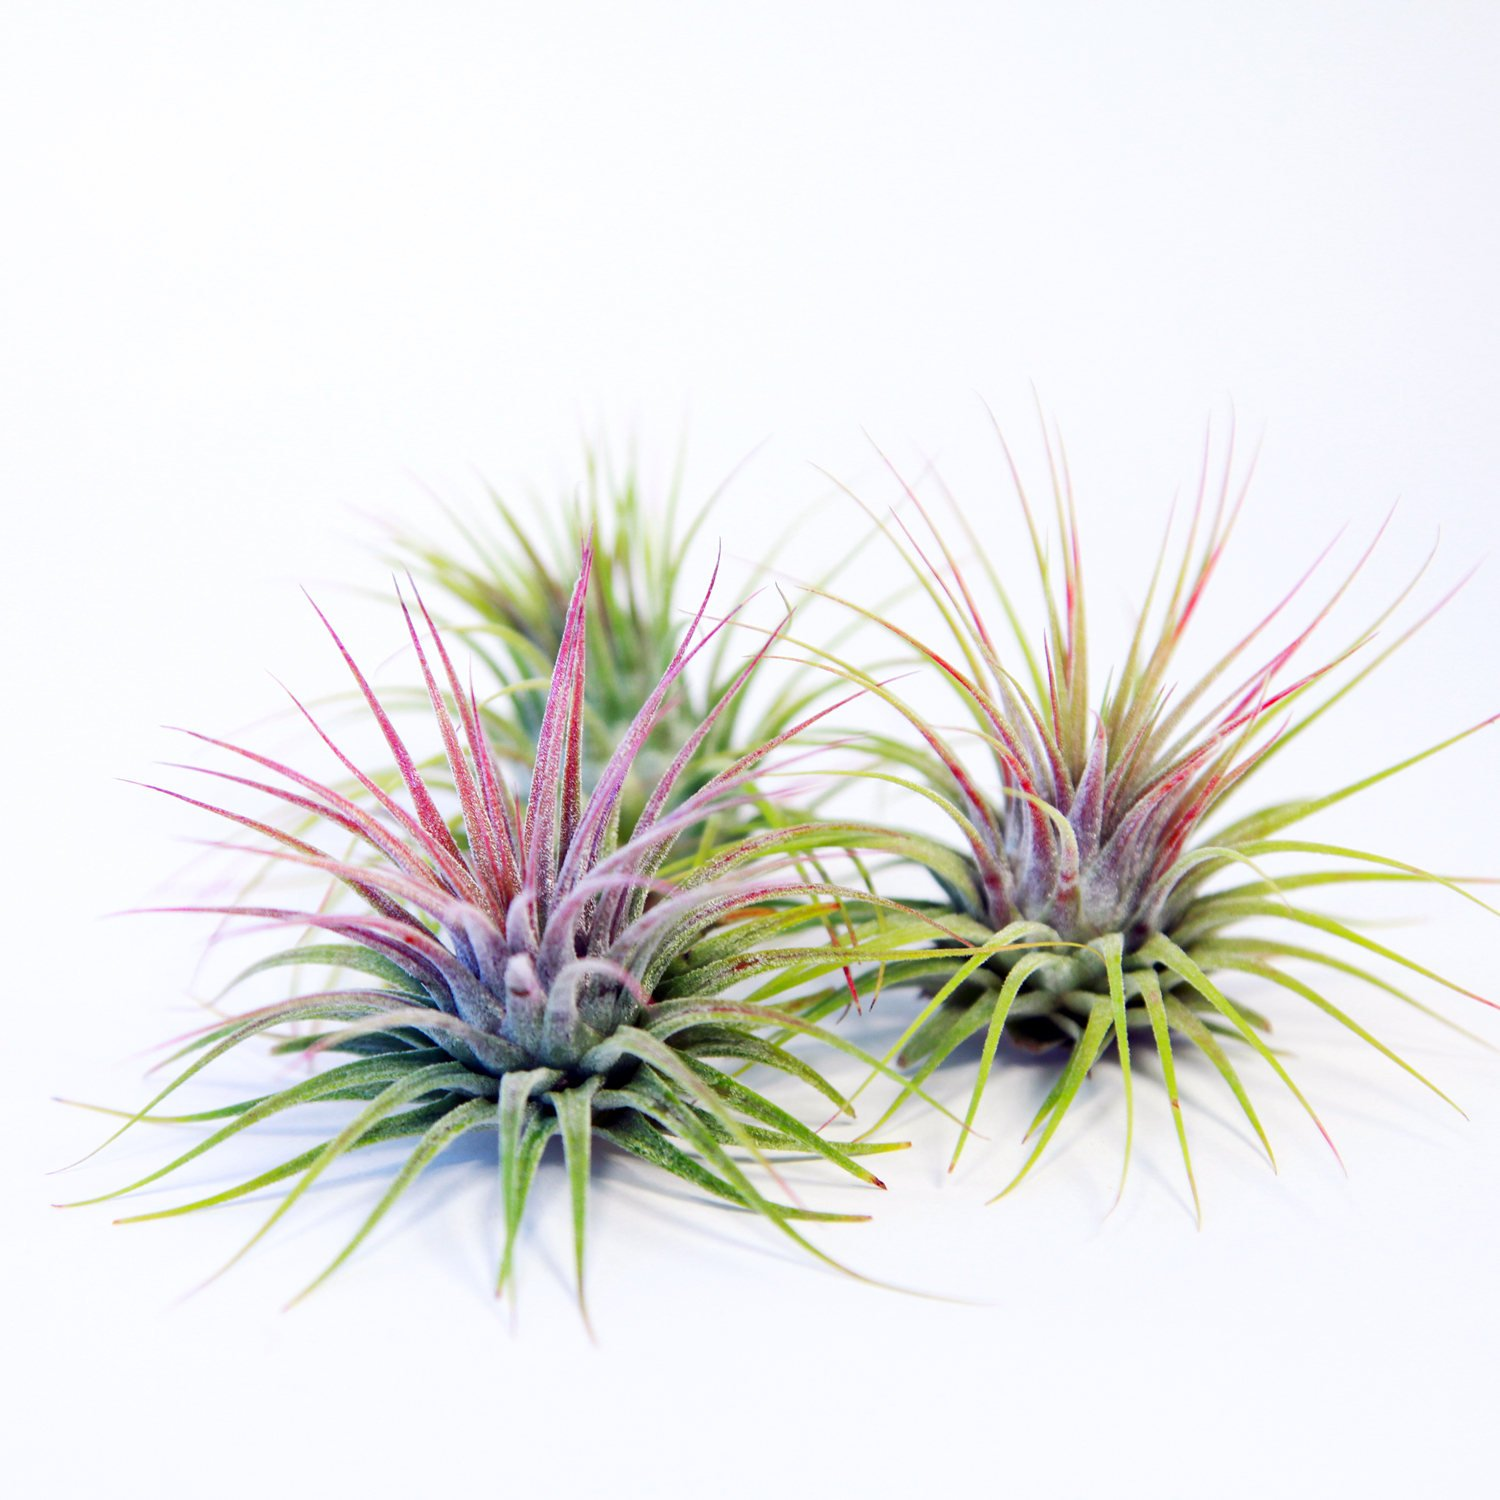 Air Plants - Tillandsia Ionantha Guatemala - Choose Your Custom Quantity - Fast Shipping - Includes Free PDF E-Book (75) by Air Plant Shop (Image #1)